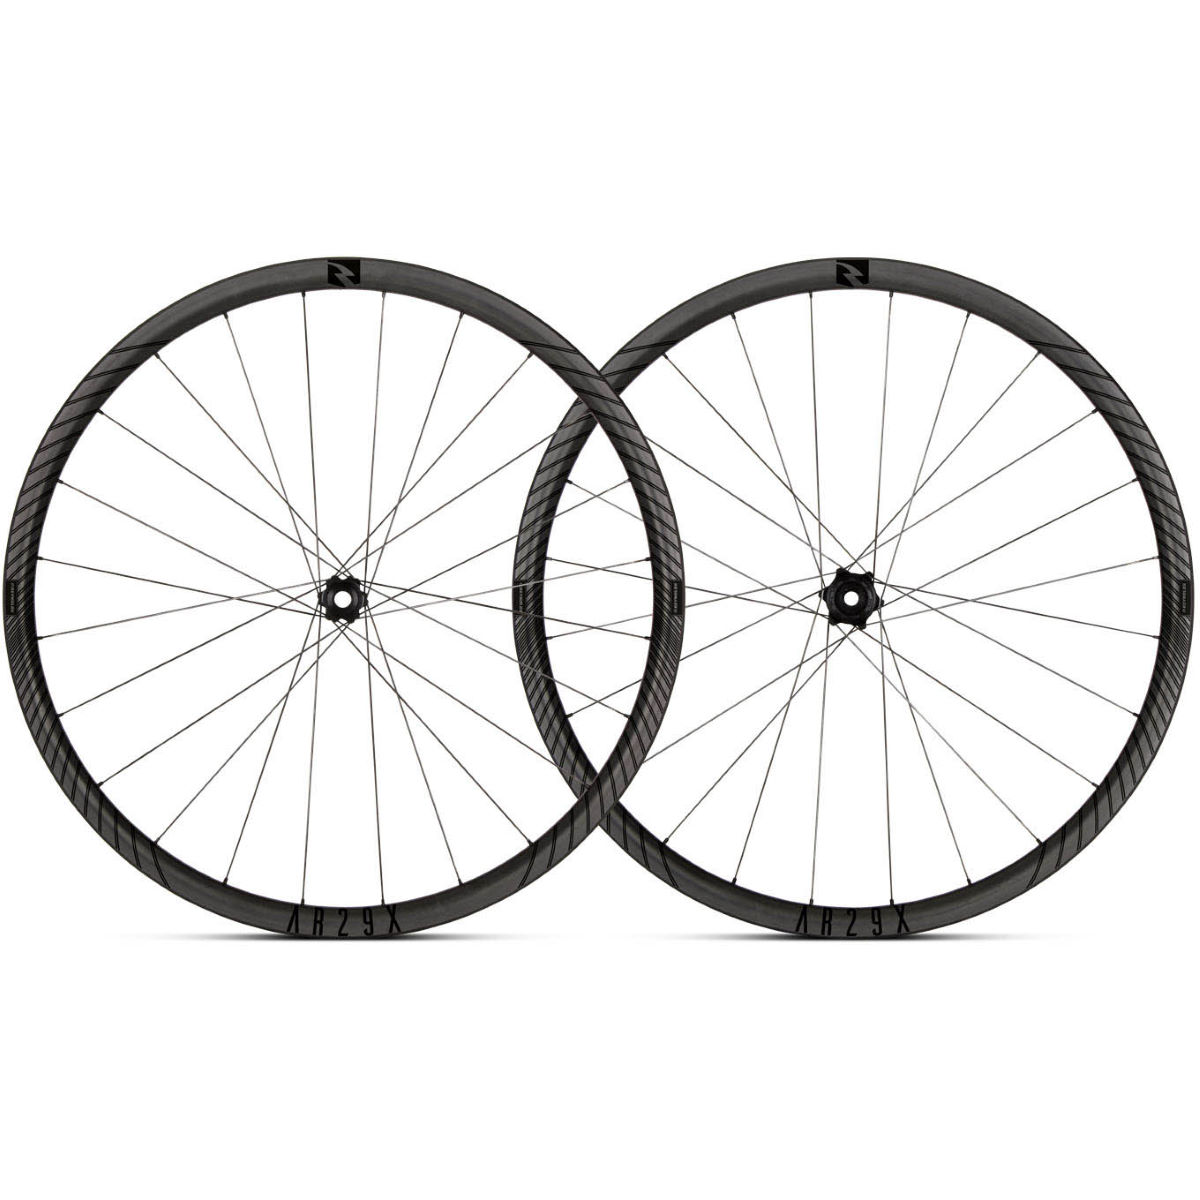 Reynolds Reynolds ARX 29 Carbon Disc Road Wheelset   Wheel Sets